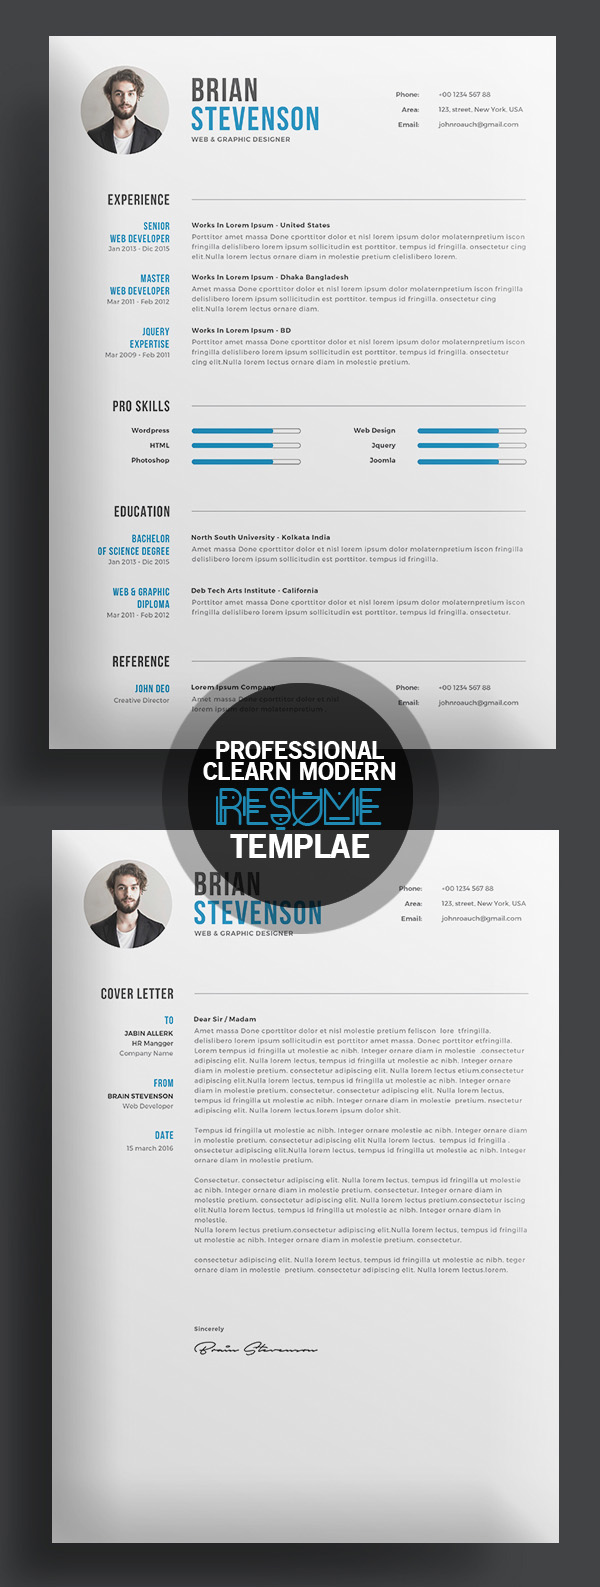 50 Best Minimal Resume Templates - 15